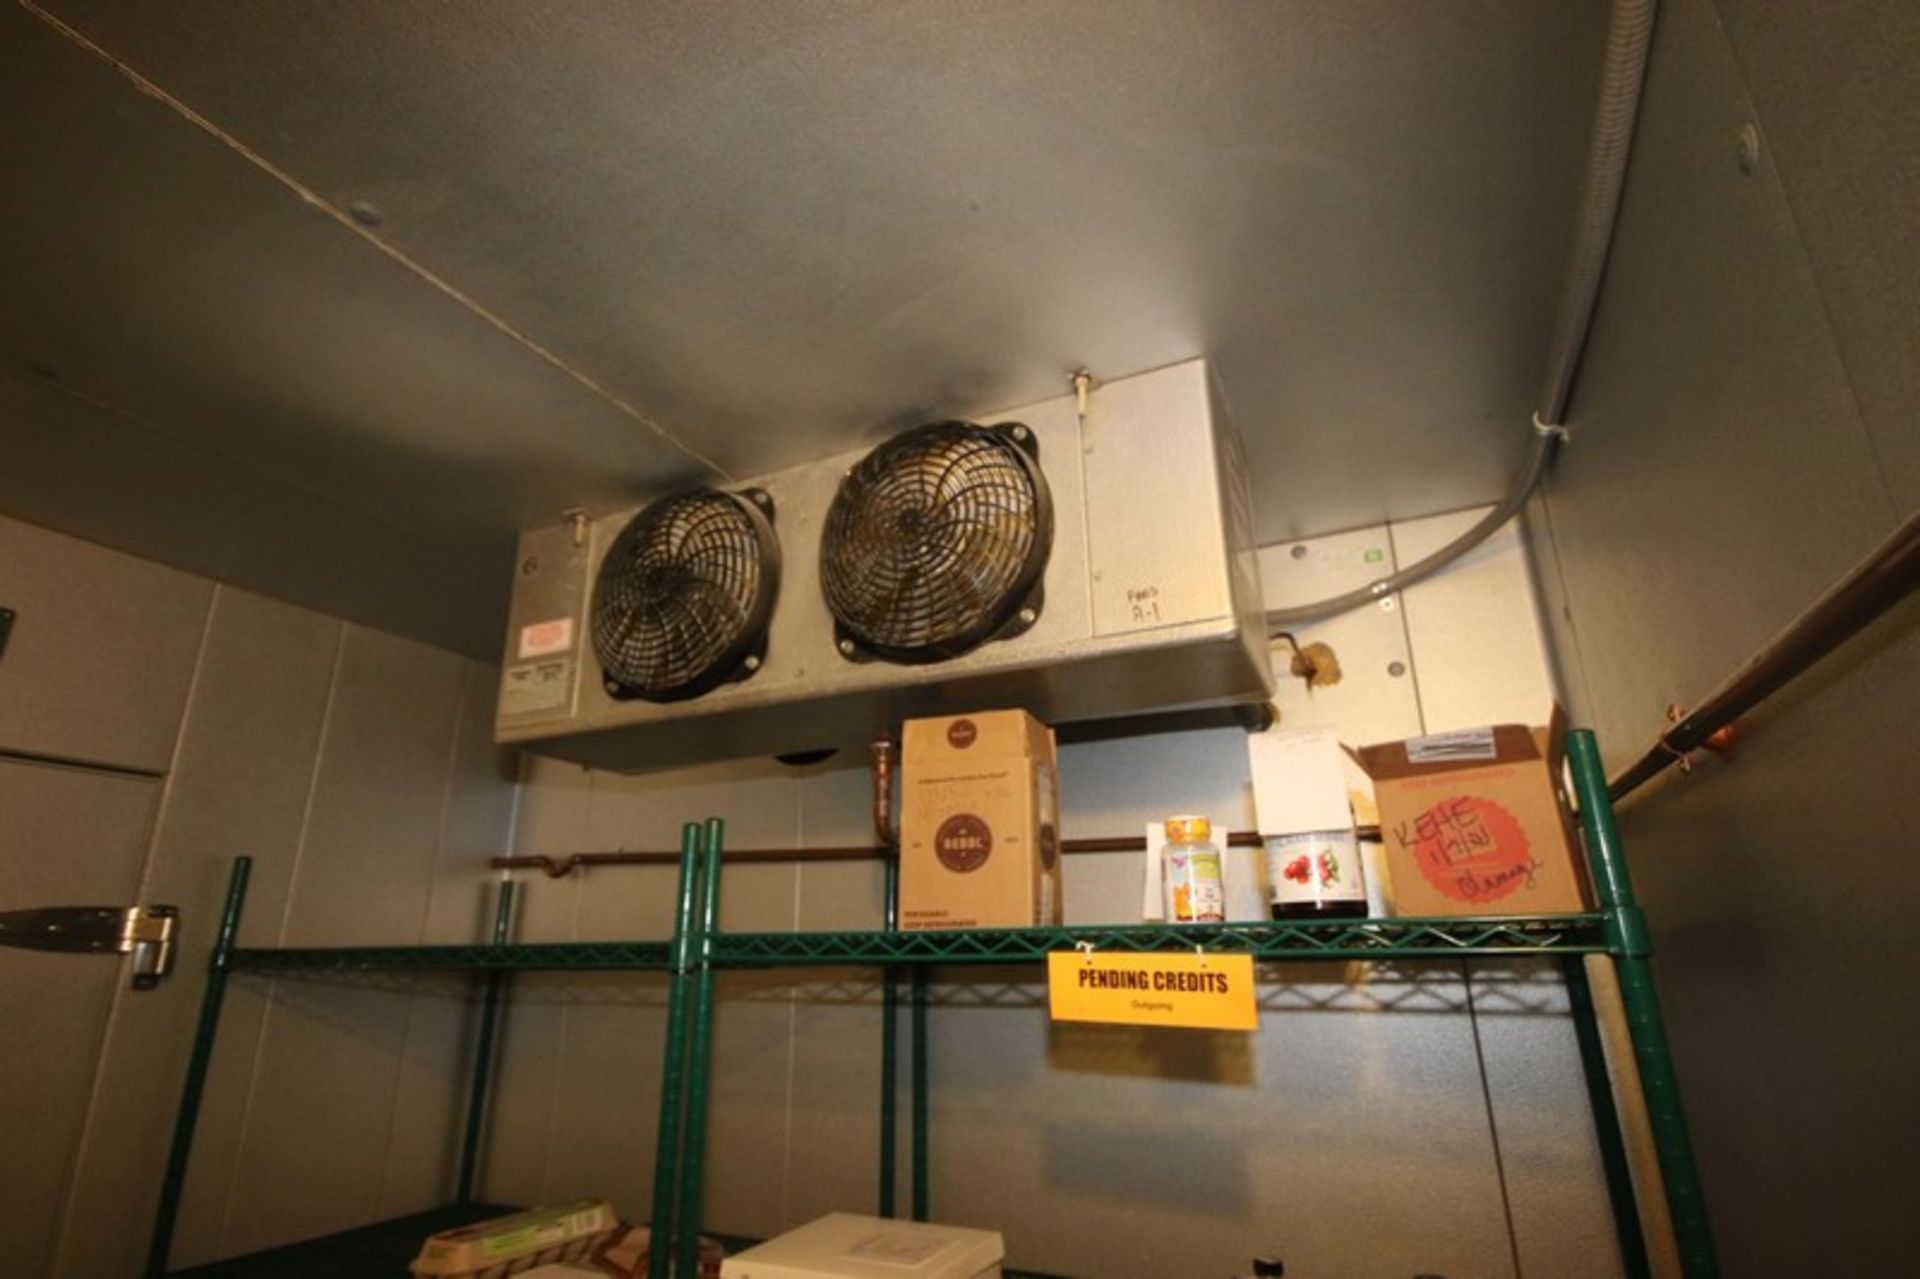 Harford Dual Compartment Walk-In Cooler & Freezer, M/N DR36788W5H8D, S/N XW703D9, Compartment Sizes: - Image 7 of 16